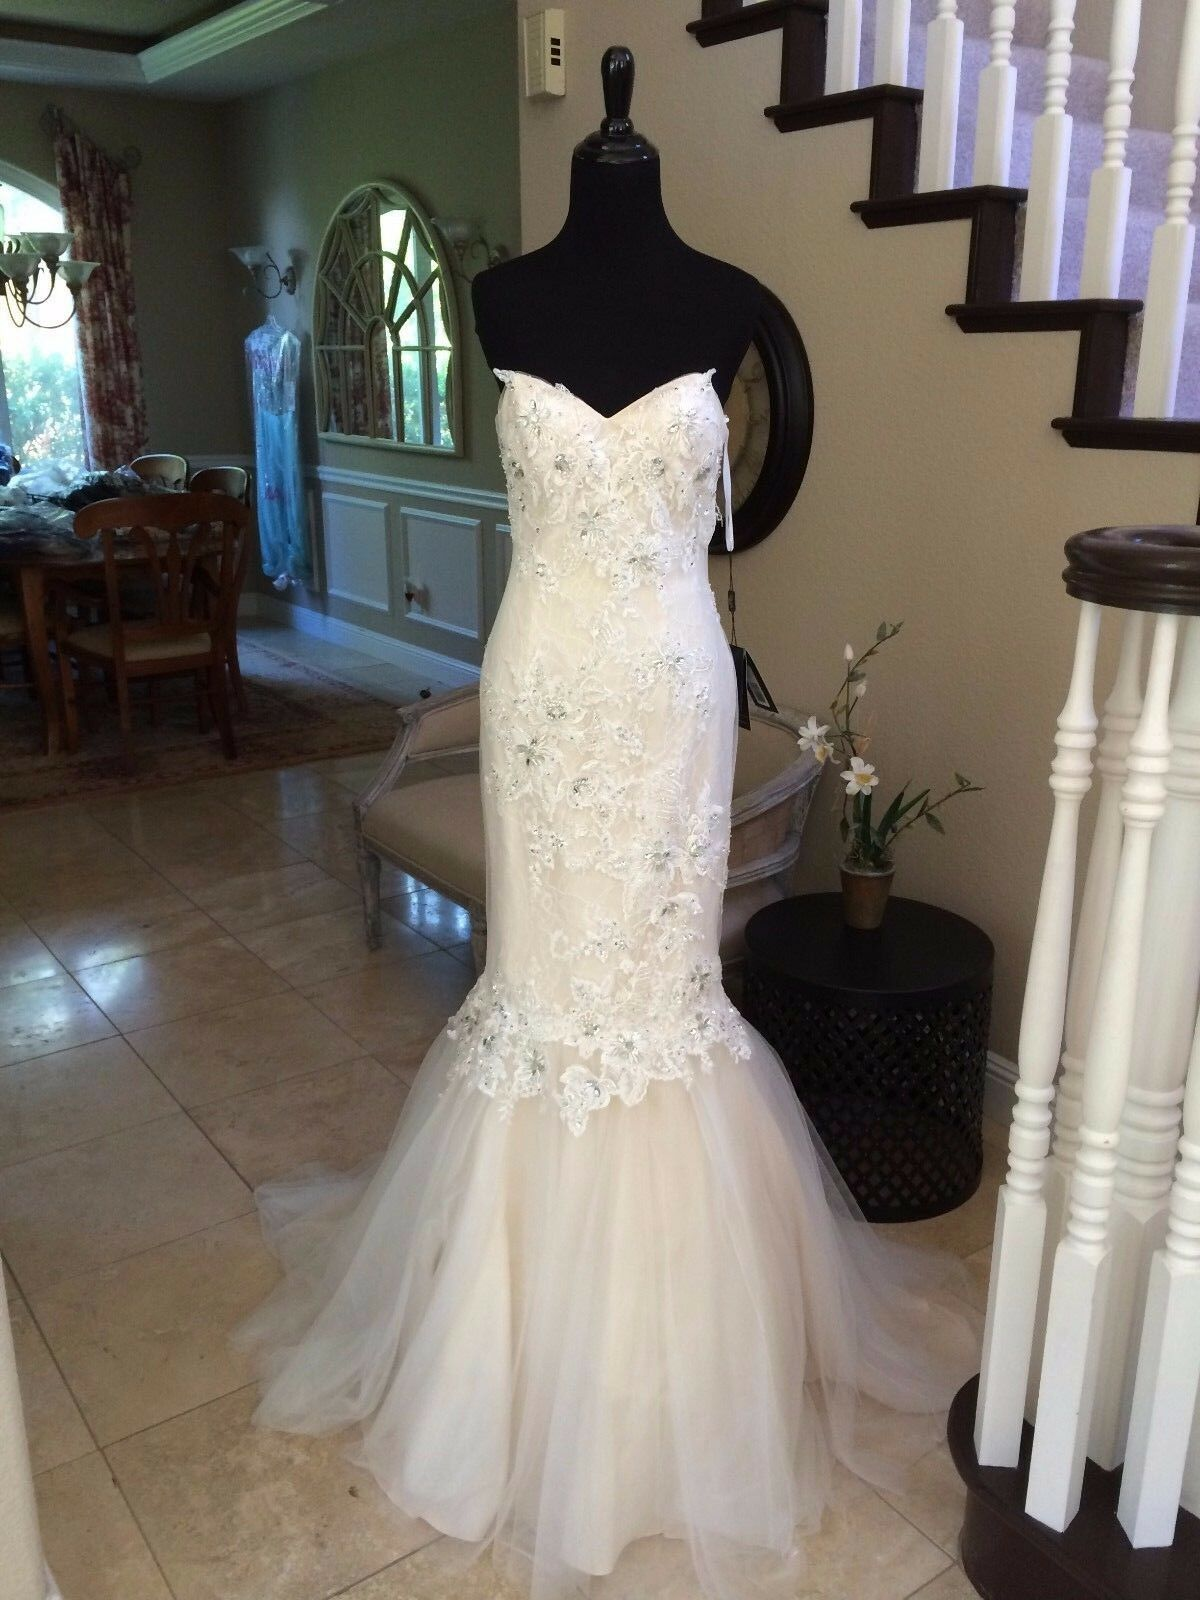 770 NWT IVORY LACE TERANI COUTURE PROM PAGEANT PAGEANT PAGEANT FORMAL WEDDING DRESS GOWN SIZE 4 777d61